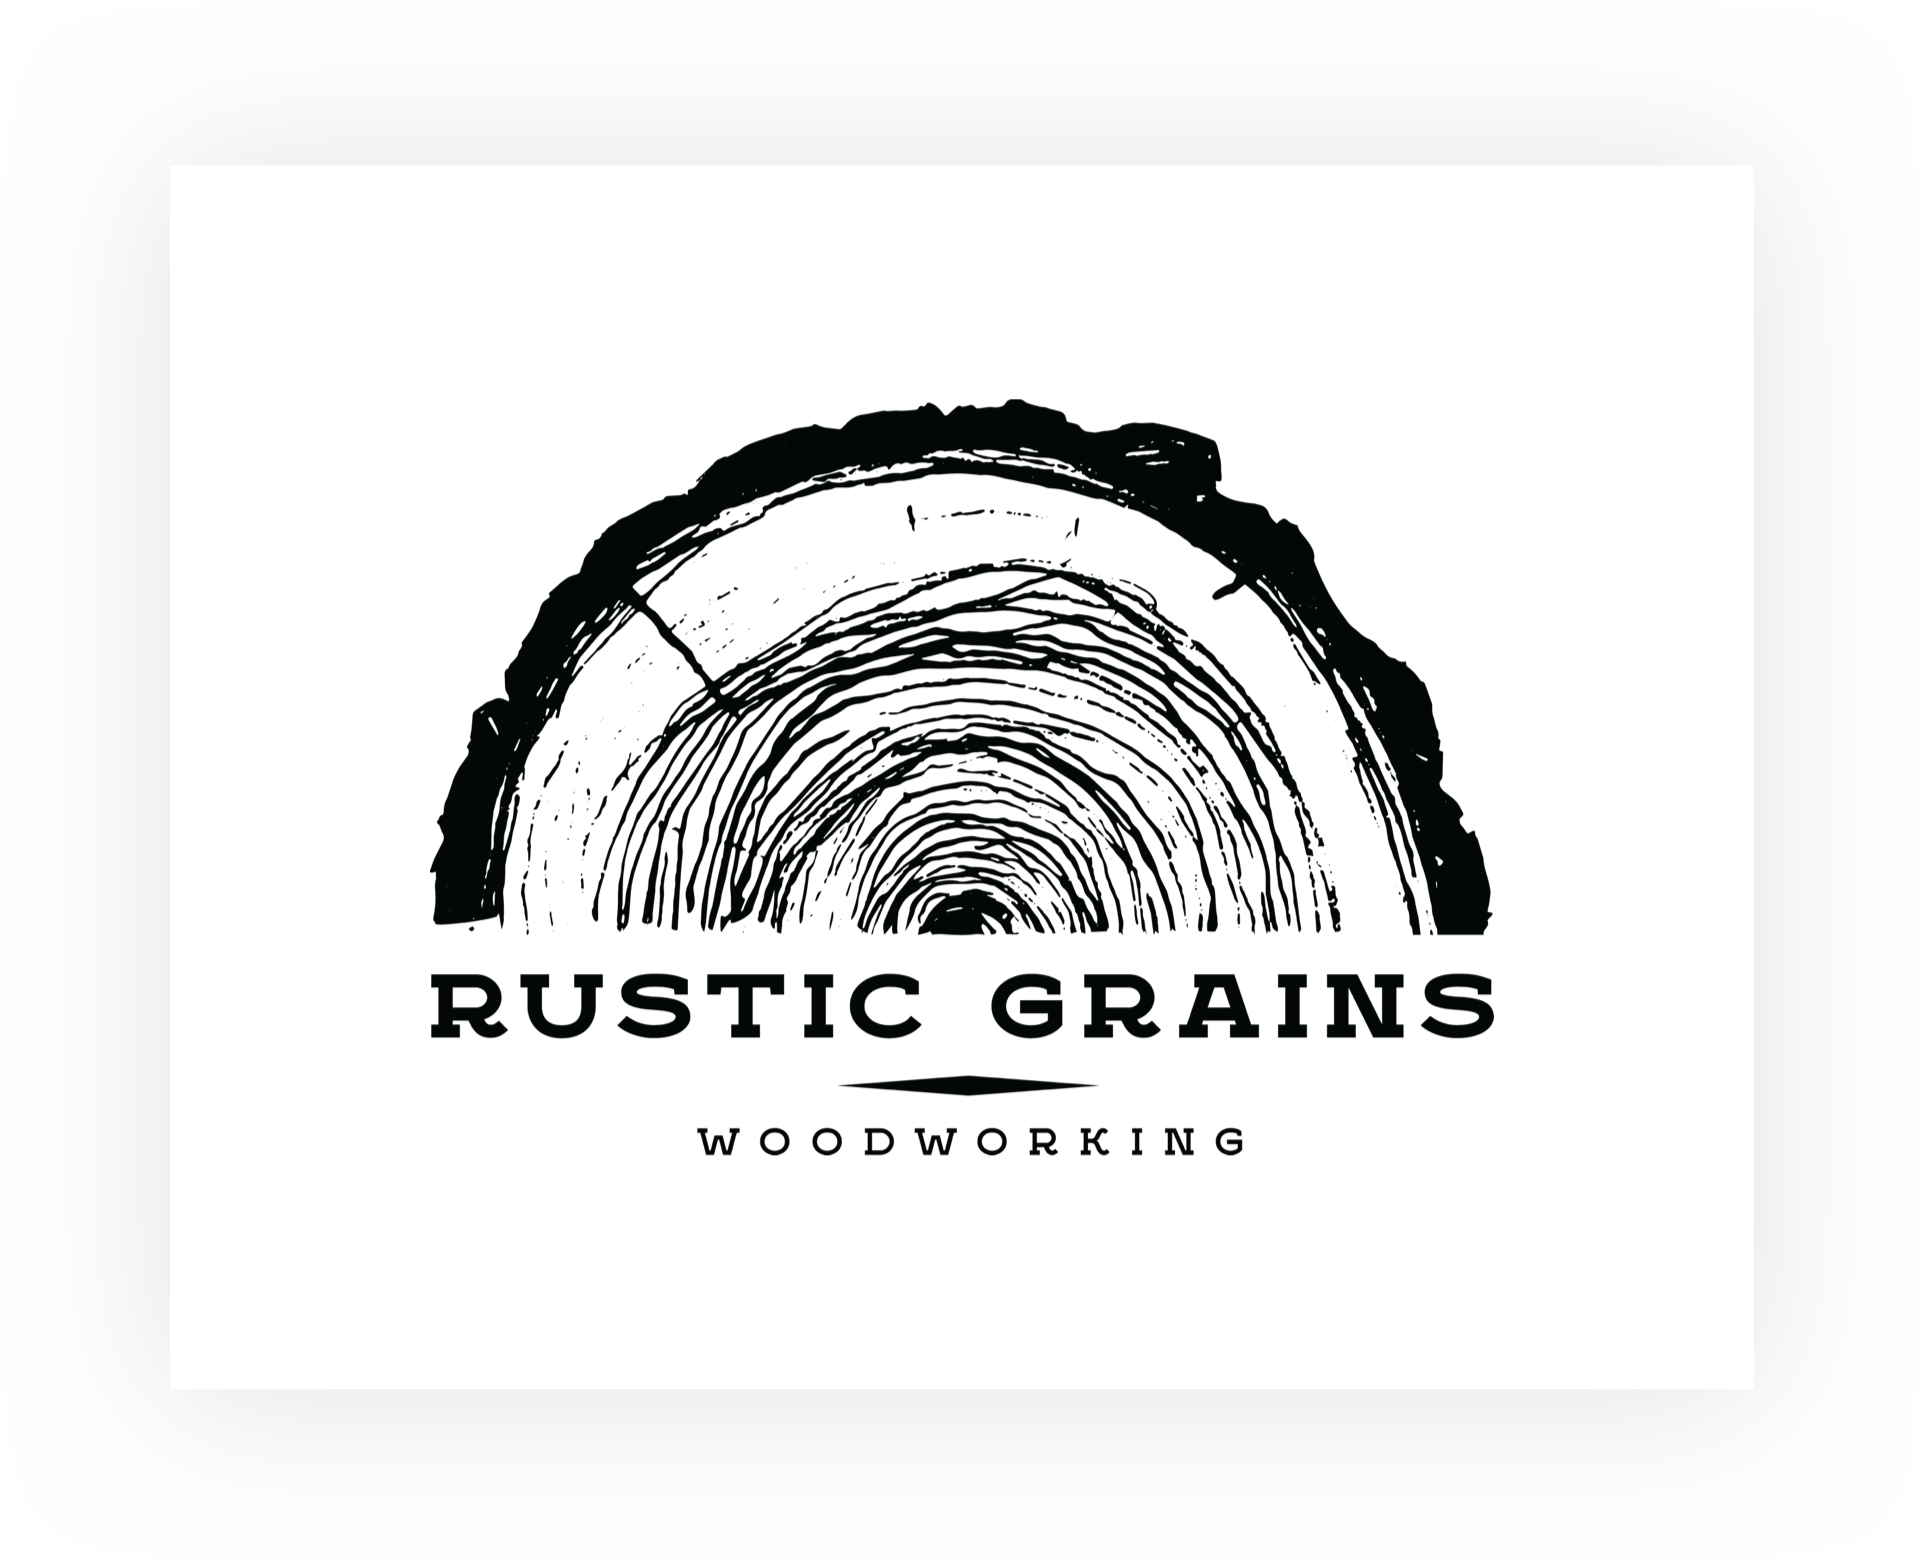 Rustic Grains